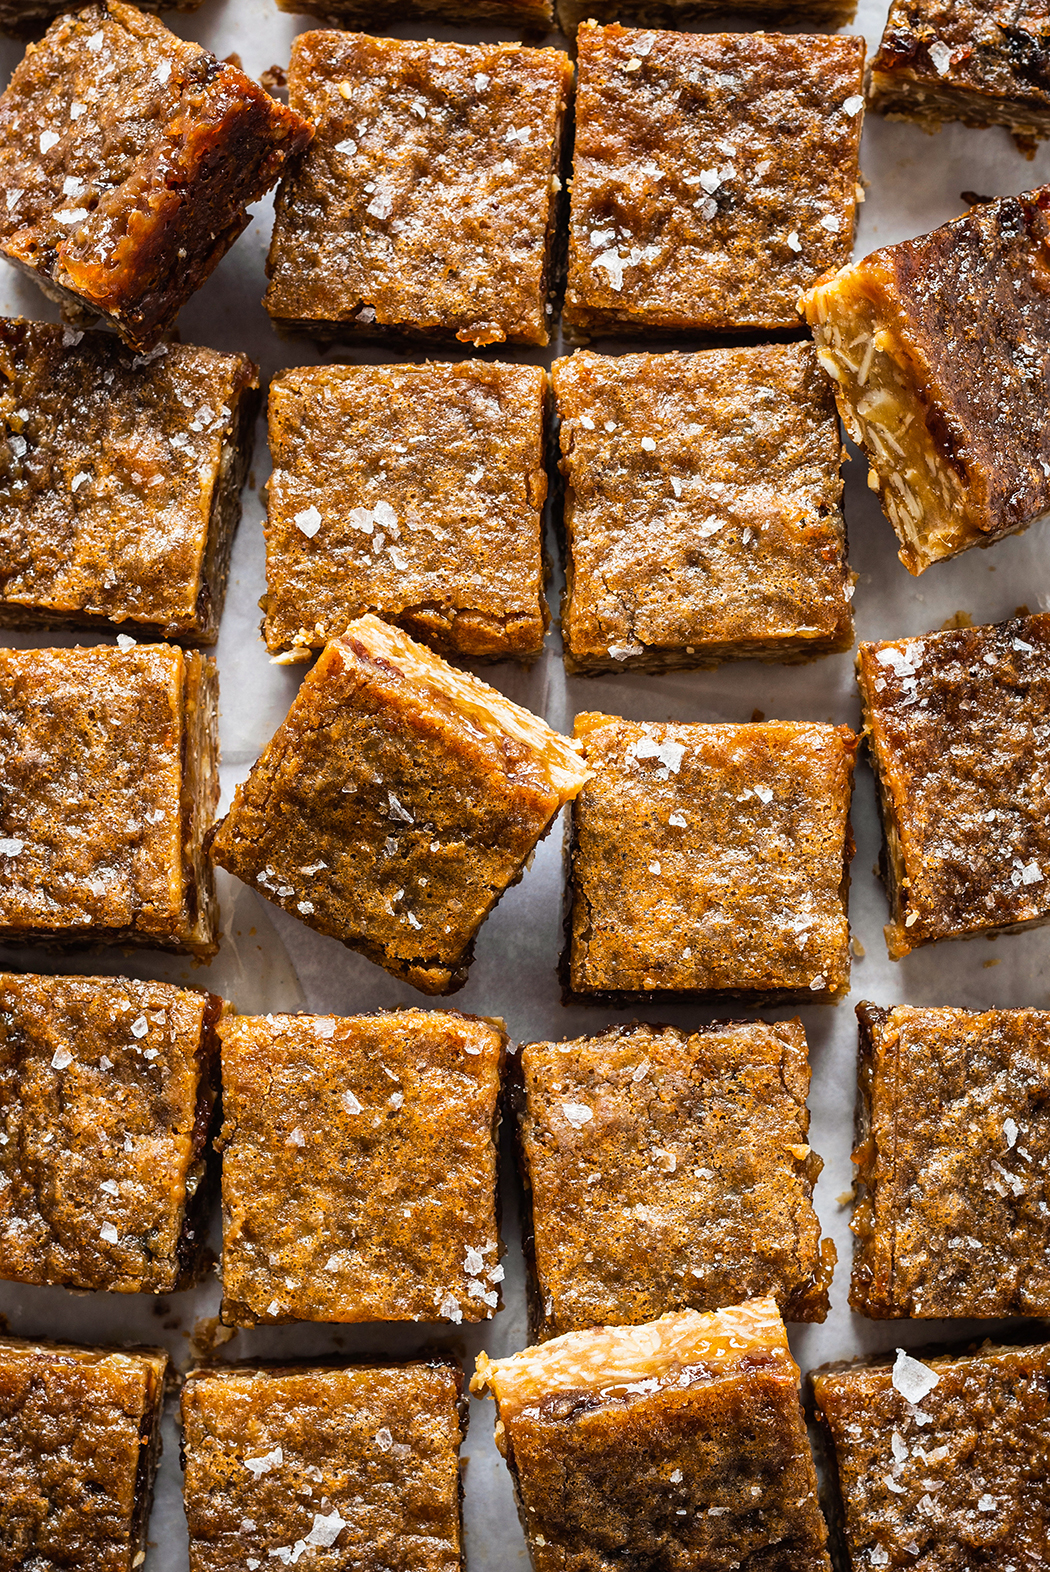 Brown Butter Slice-3253-4 small-2 small.jpg